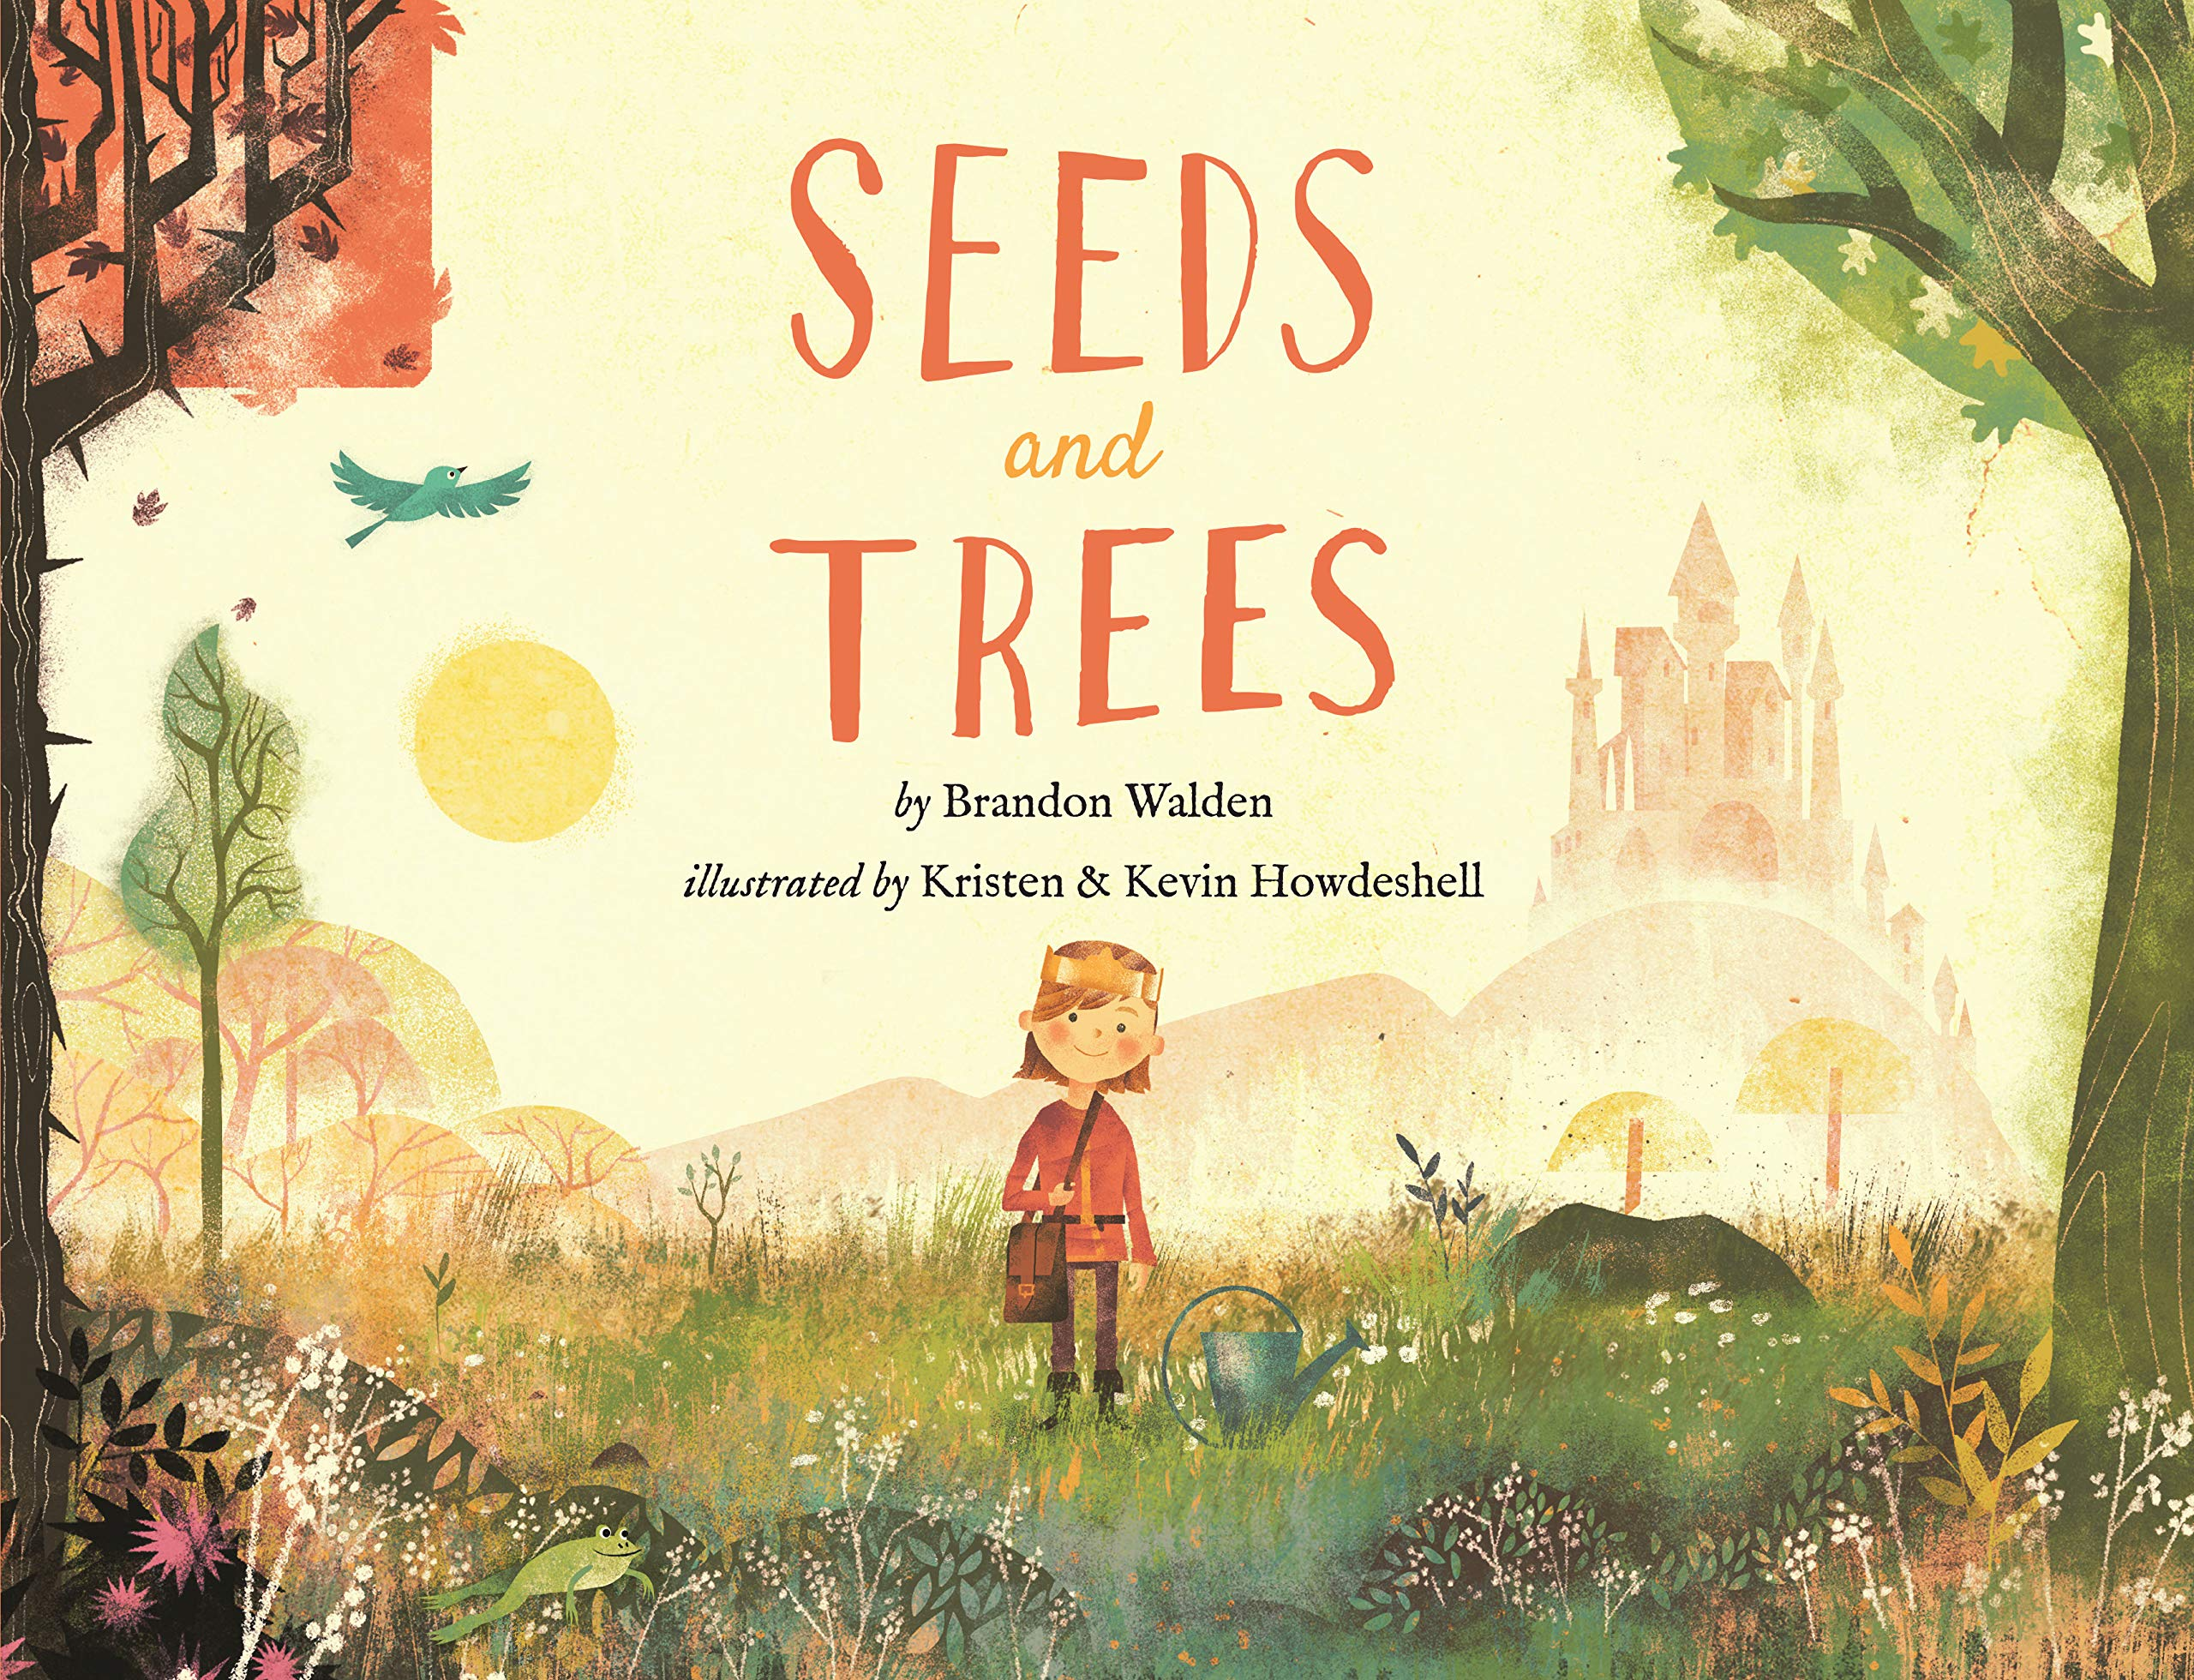 Seeds and Trees: A children's book about the power of words by The Treasured Tree